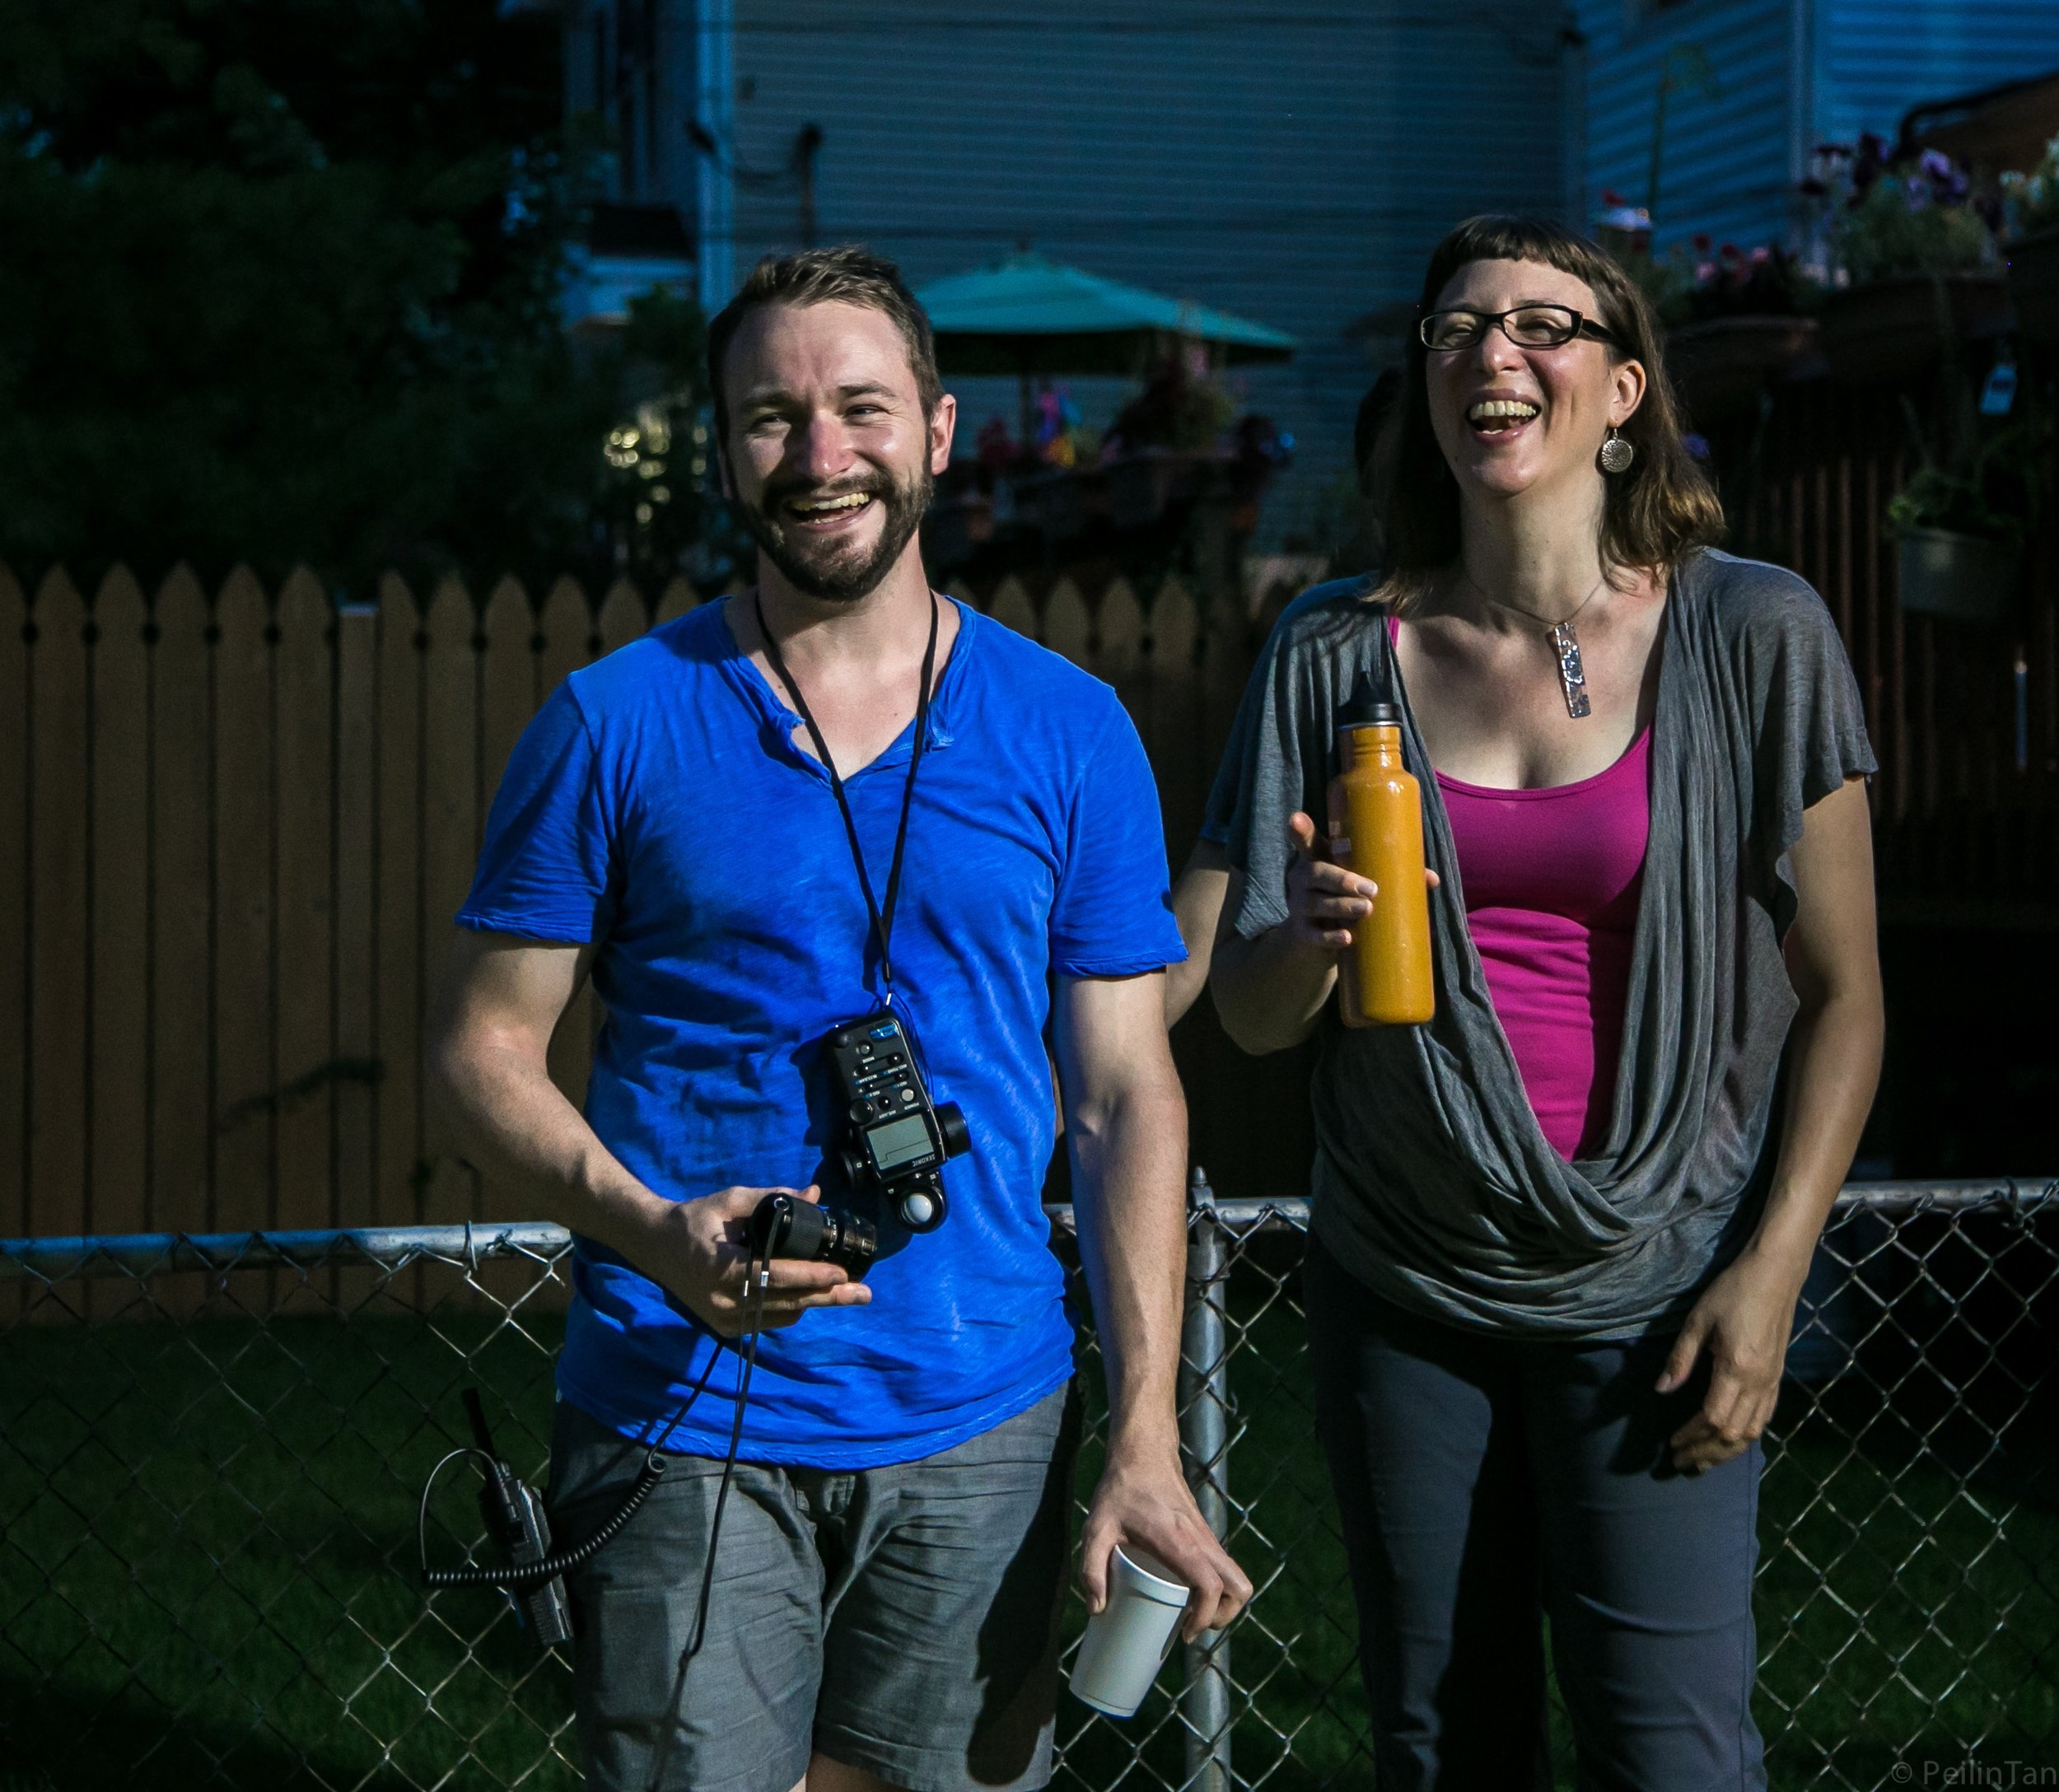 Director of Photography Jonah Rubash and me on 'Gardening at Night'. It was not a somber shoot.